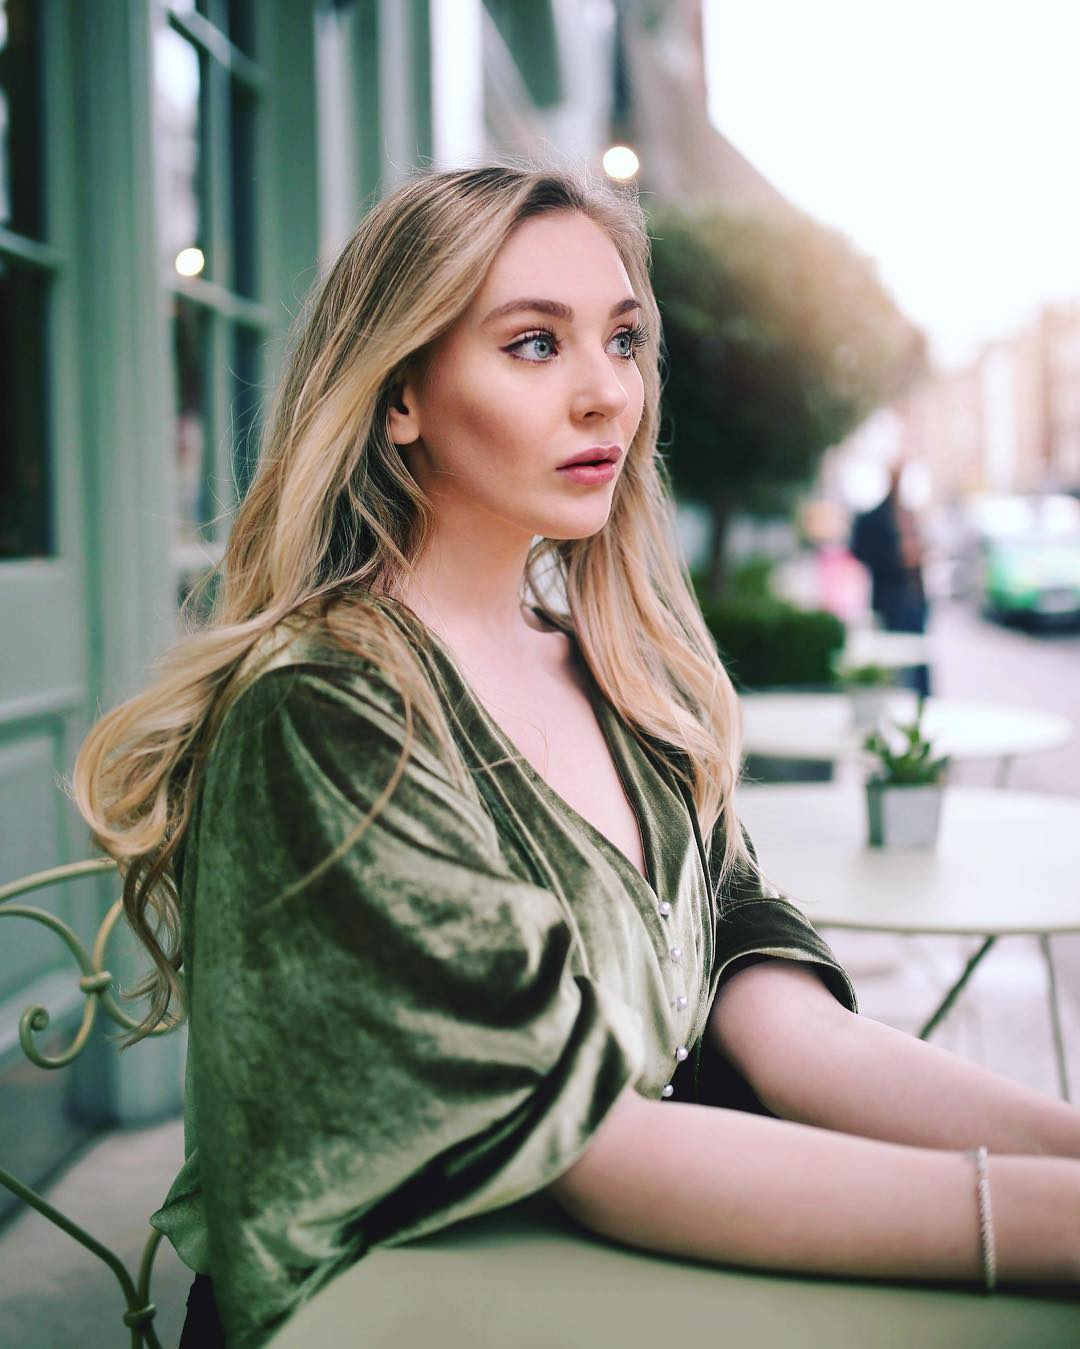 Beth lily Wiki & Bio, Age, Height, Weight, Net Worth, and